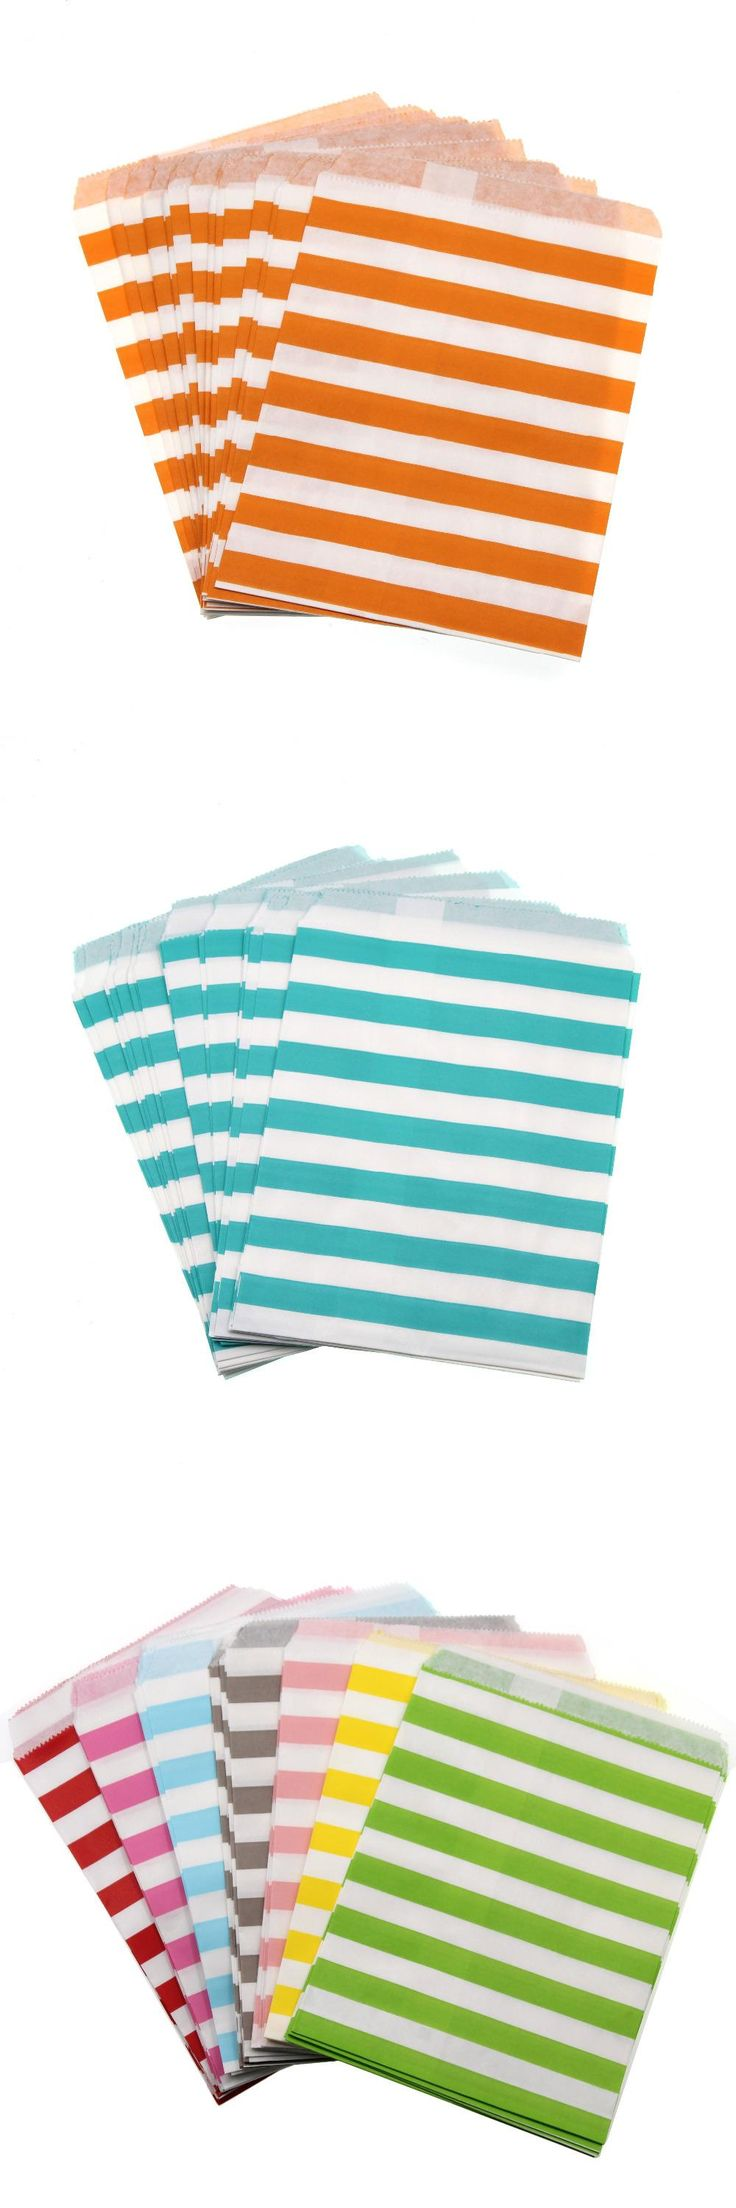 25pcs candy stripe paper bag Wedding Party Favor Candy Gift Bags Food Packaging wedding supplies